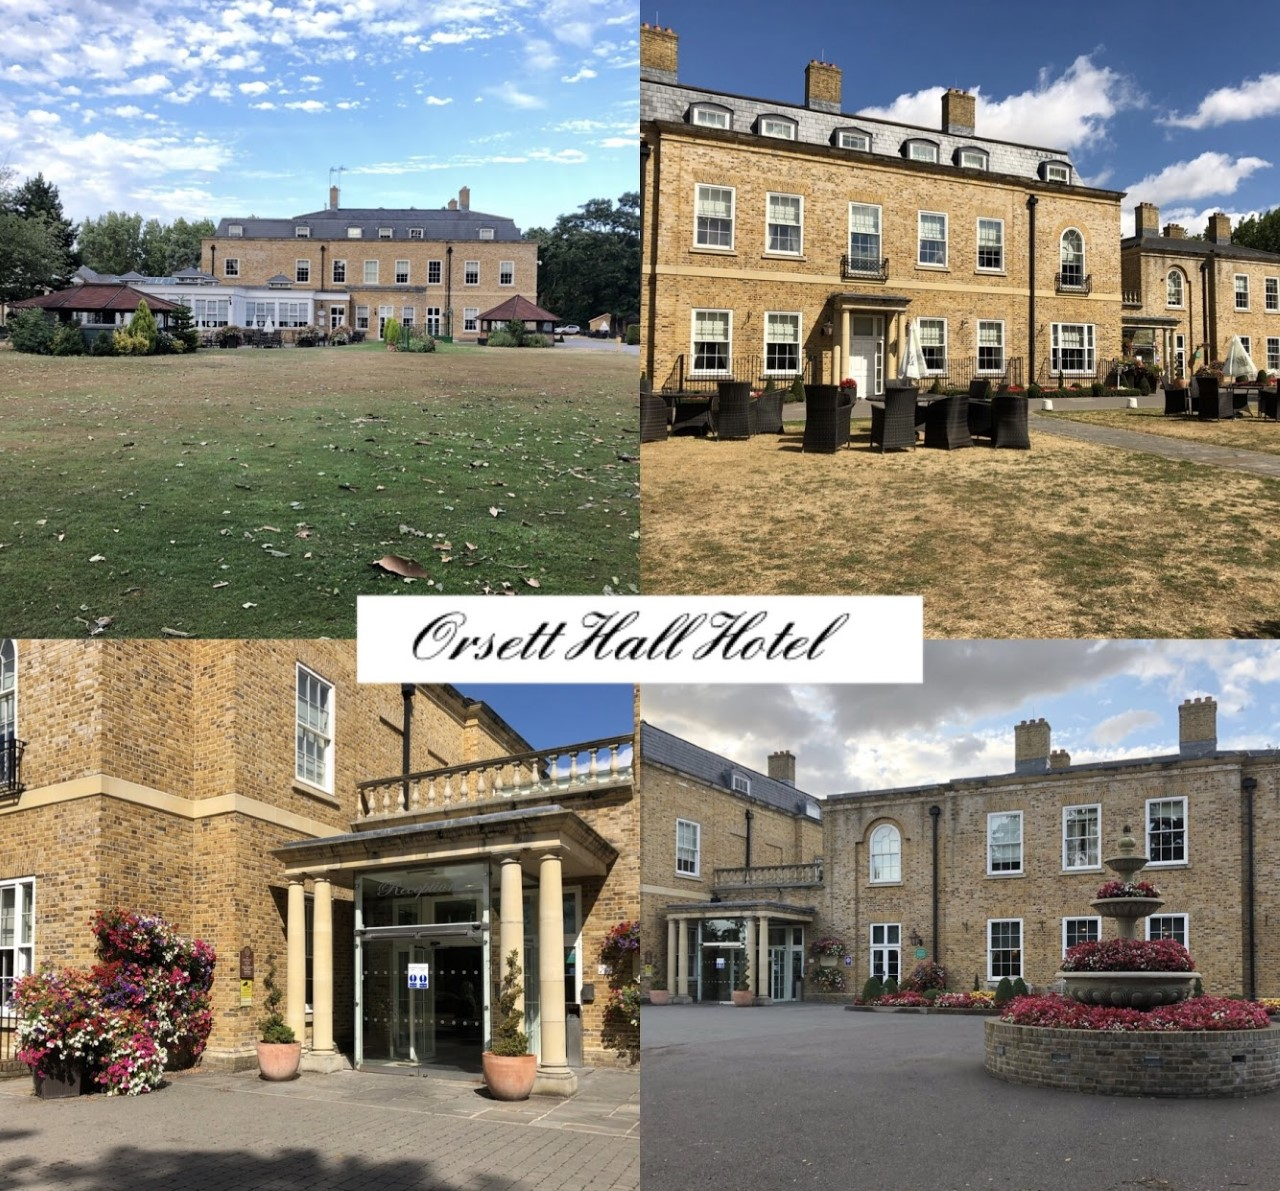 Views of Orsett Hall Hotel